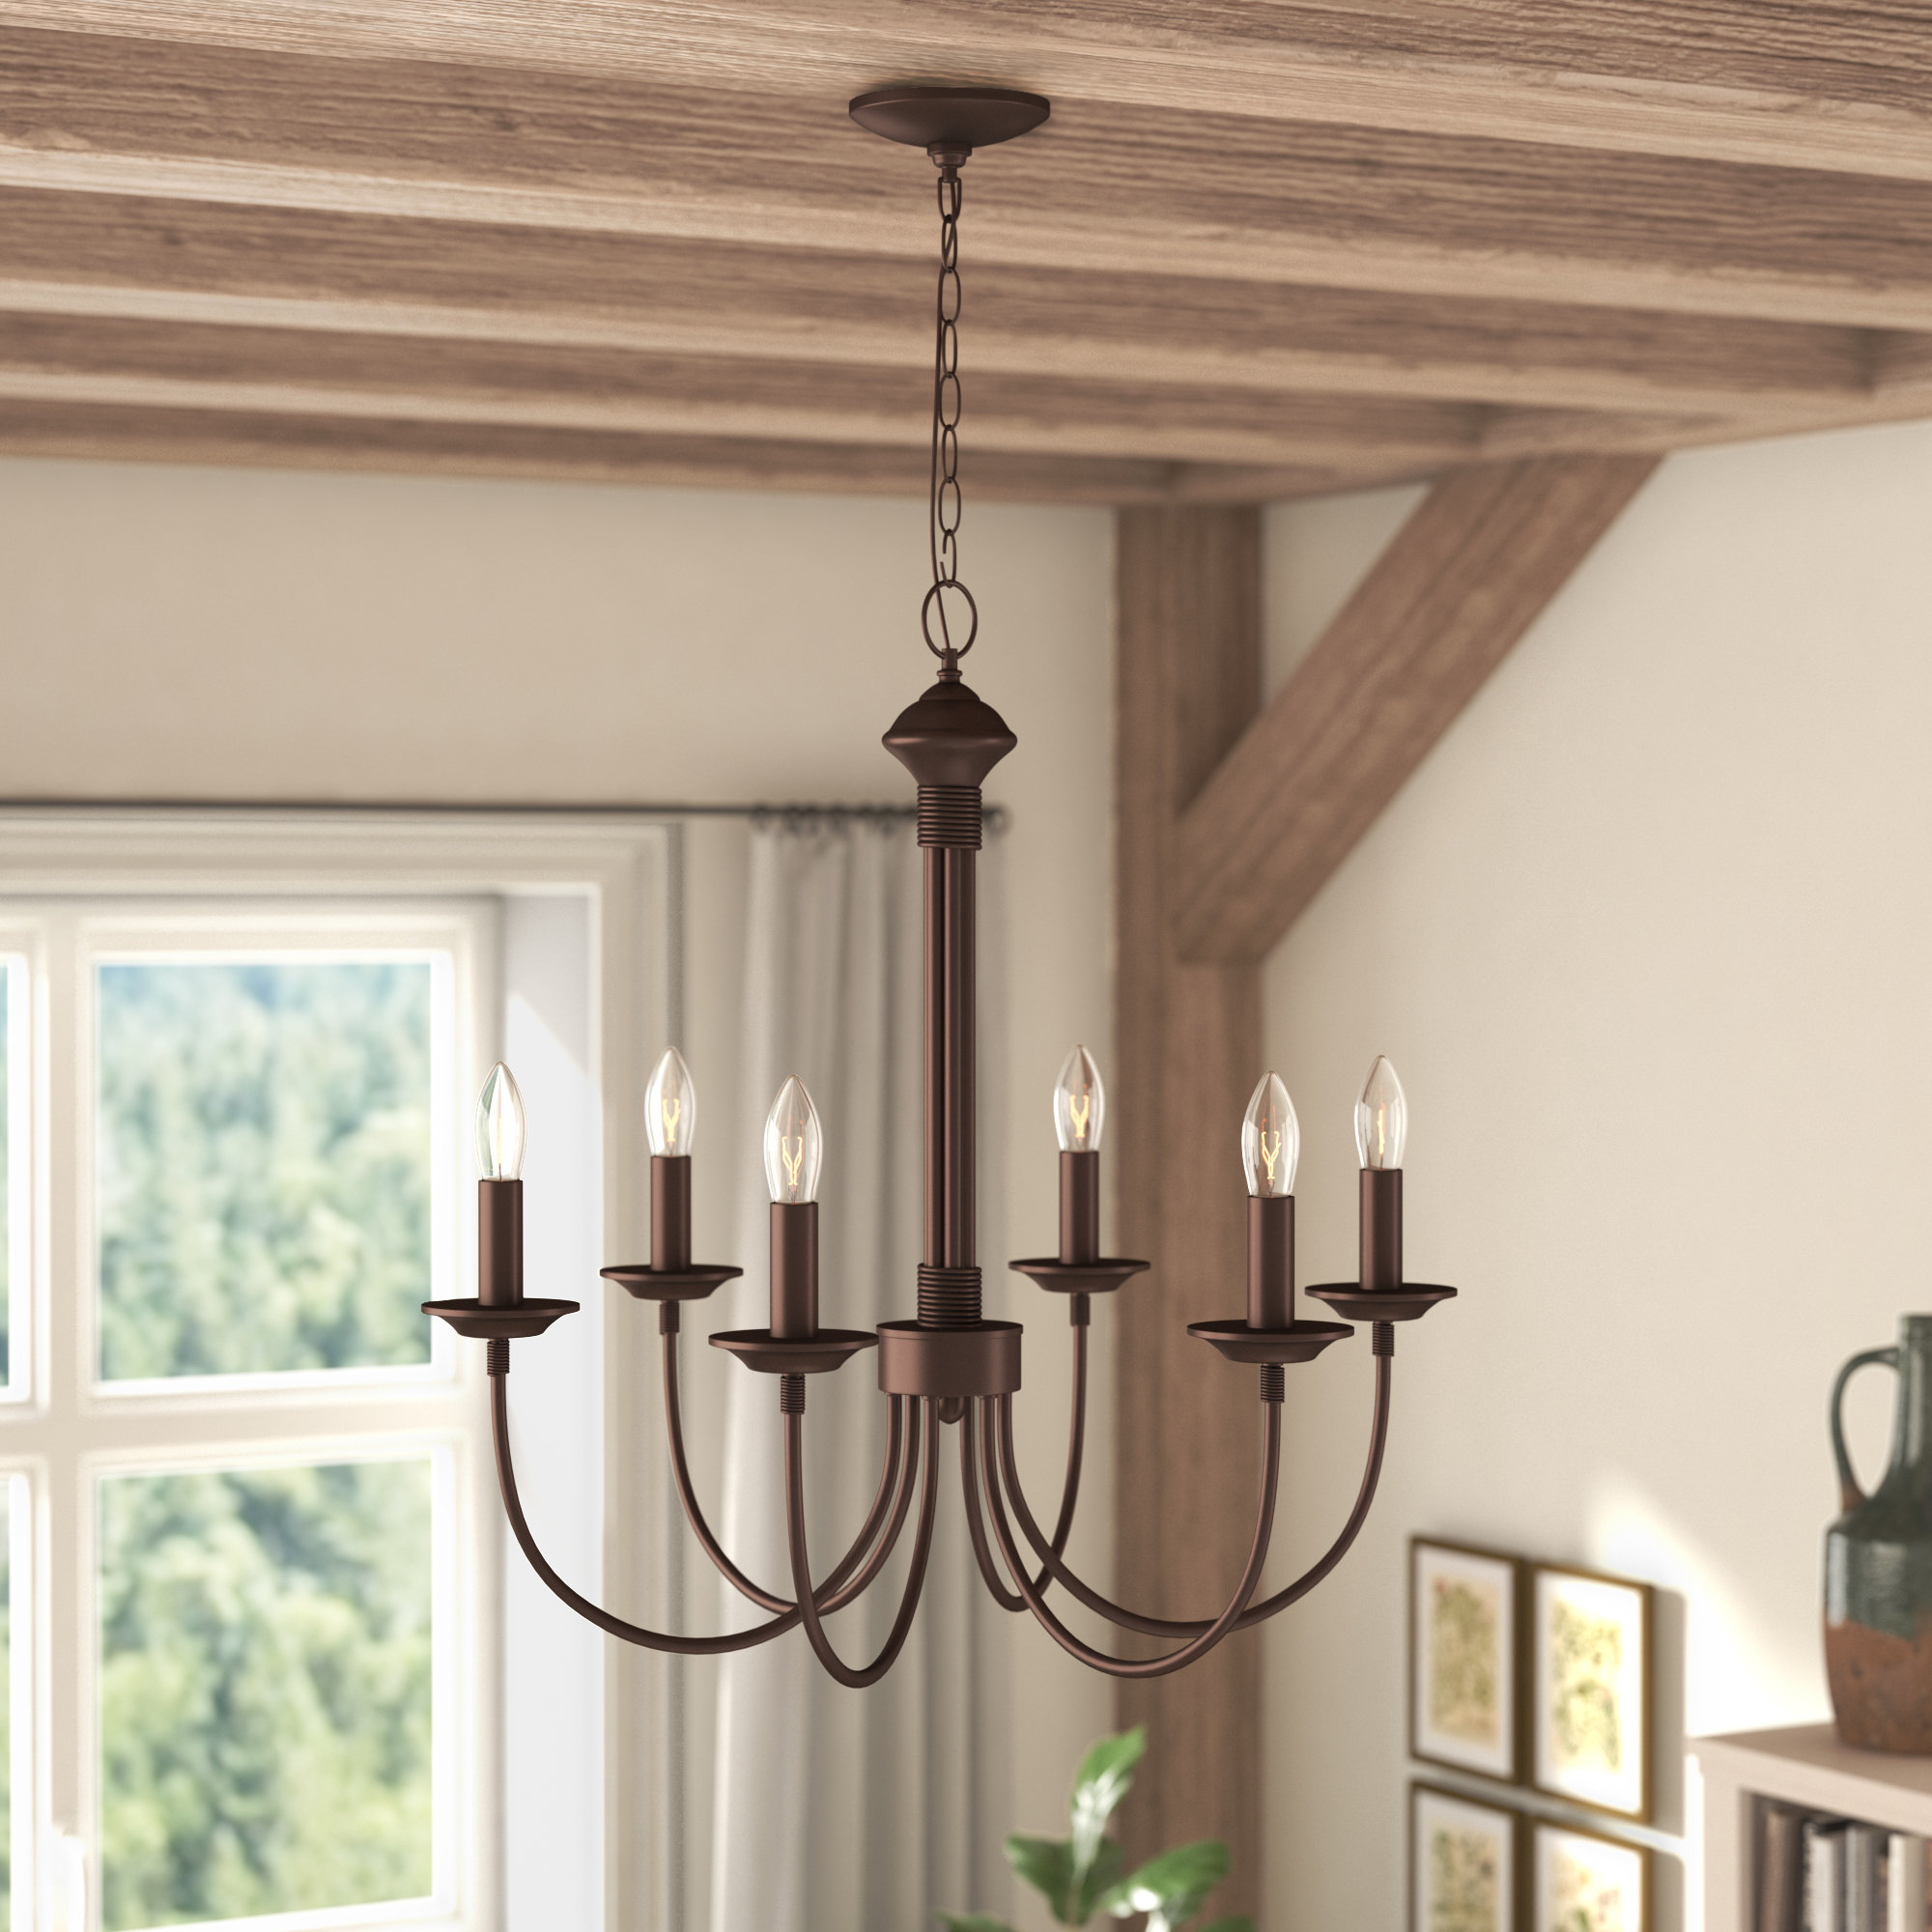 Laurel Foundry Modern Farmhouse Shaylee 6-Light Candle Style Chandelier inside Shaylee 5-Light Candle Style Chandeliers (Image 14 of 30)